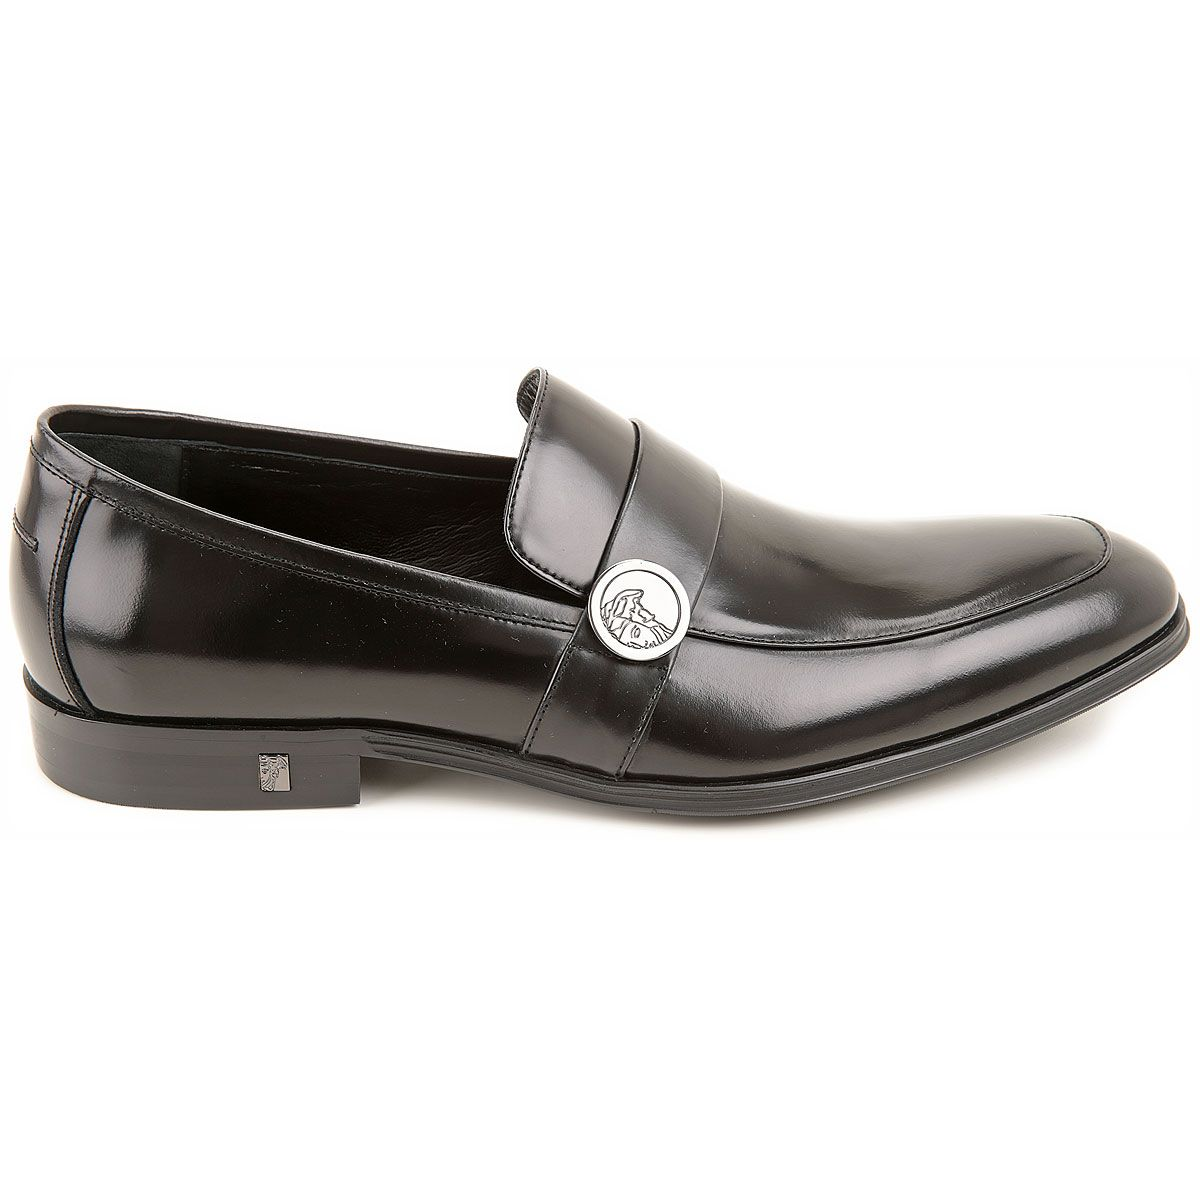 Versace jewelry for men versace mens shoes mens shoes